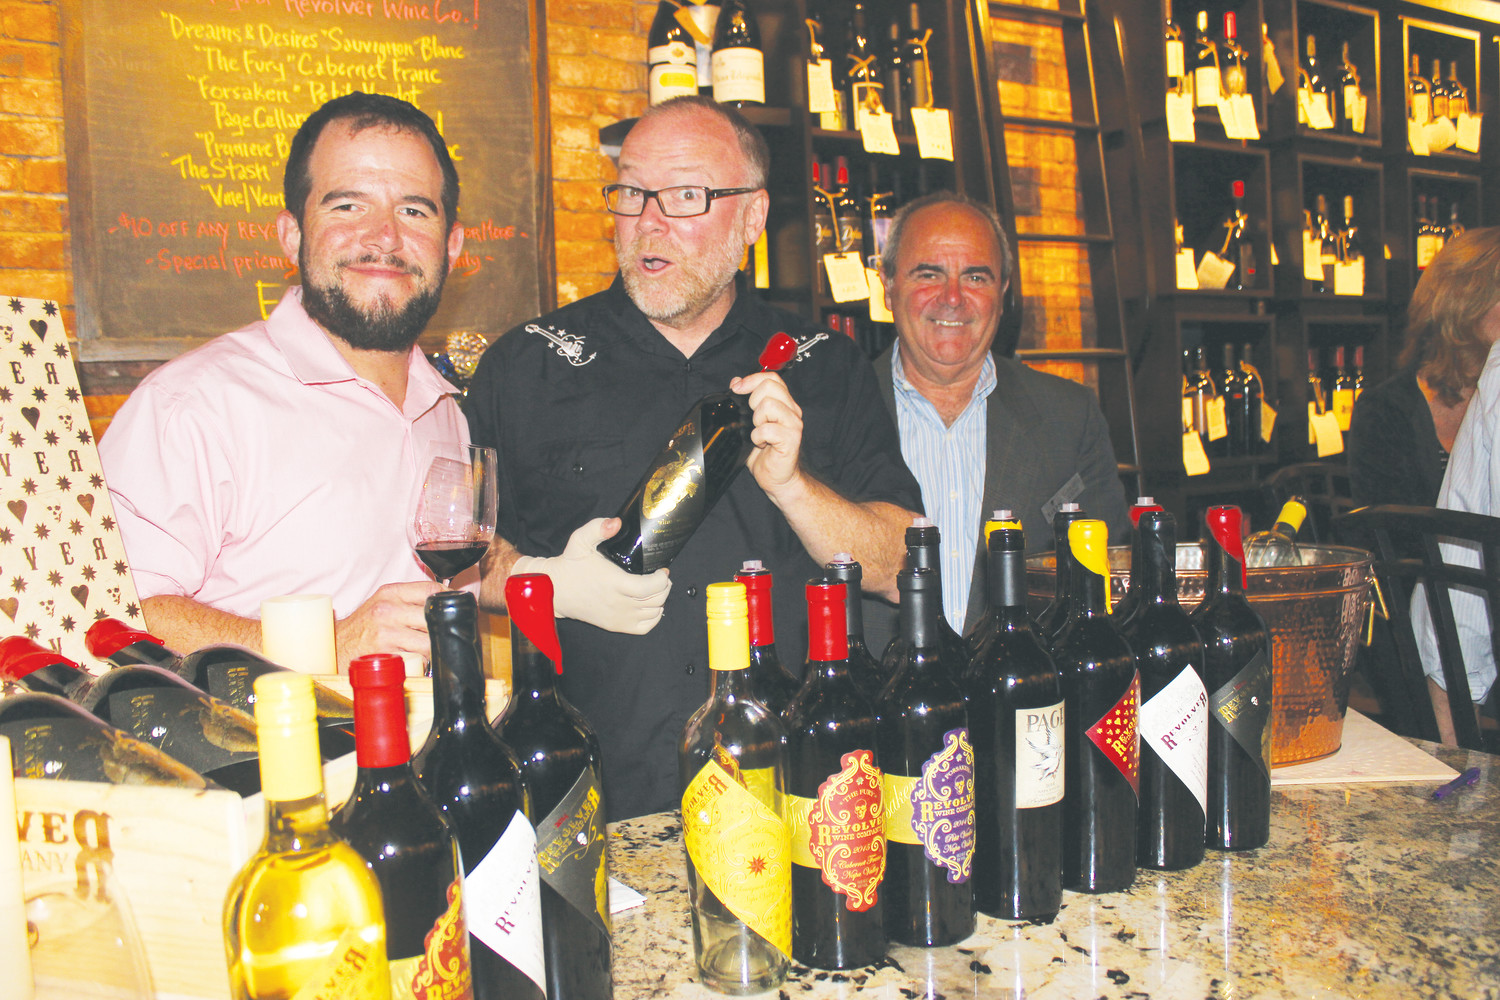 Coastal Wine Market & Tasting Room co-owner Steve Lourie, Bryan Page and Gonzalo Oliva